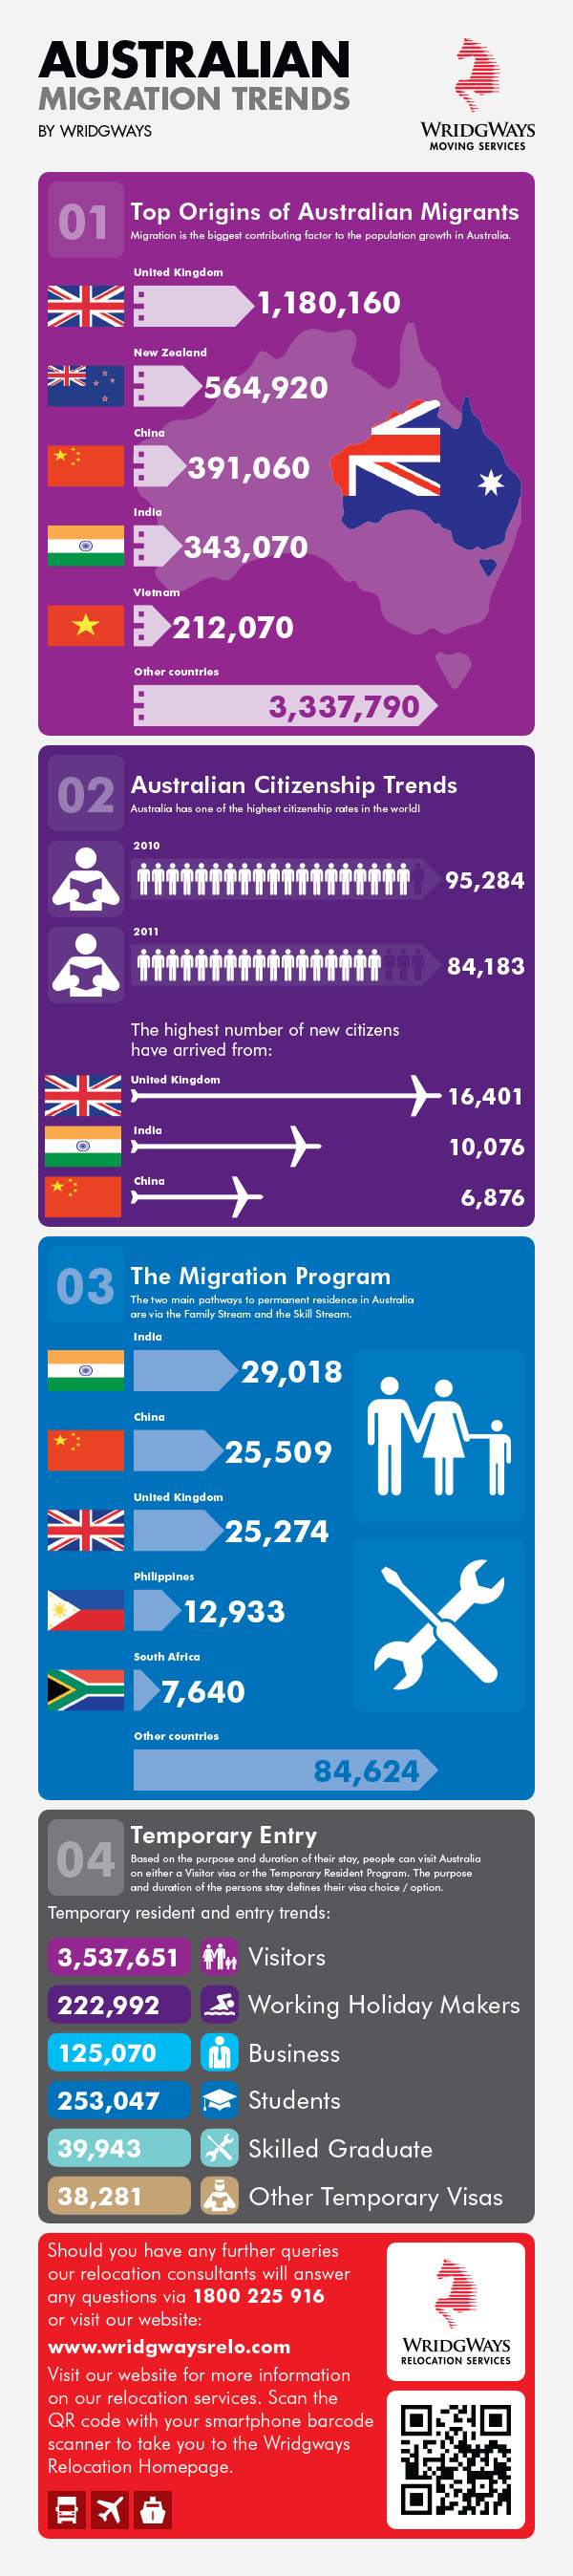 Pin By Kate Gordon On History History 20th Century History Lessons Australia Migration